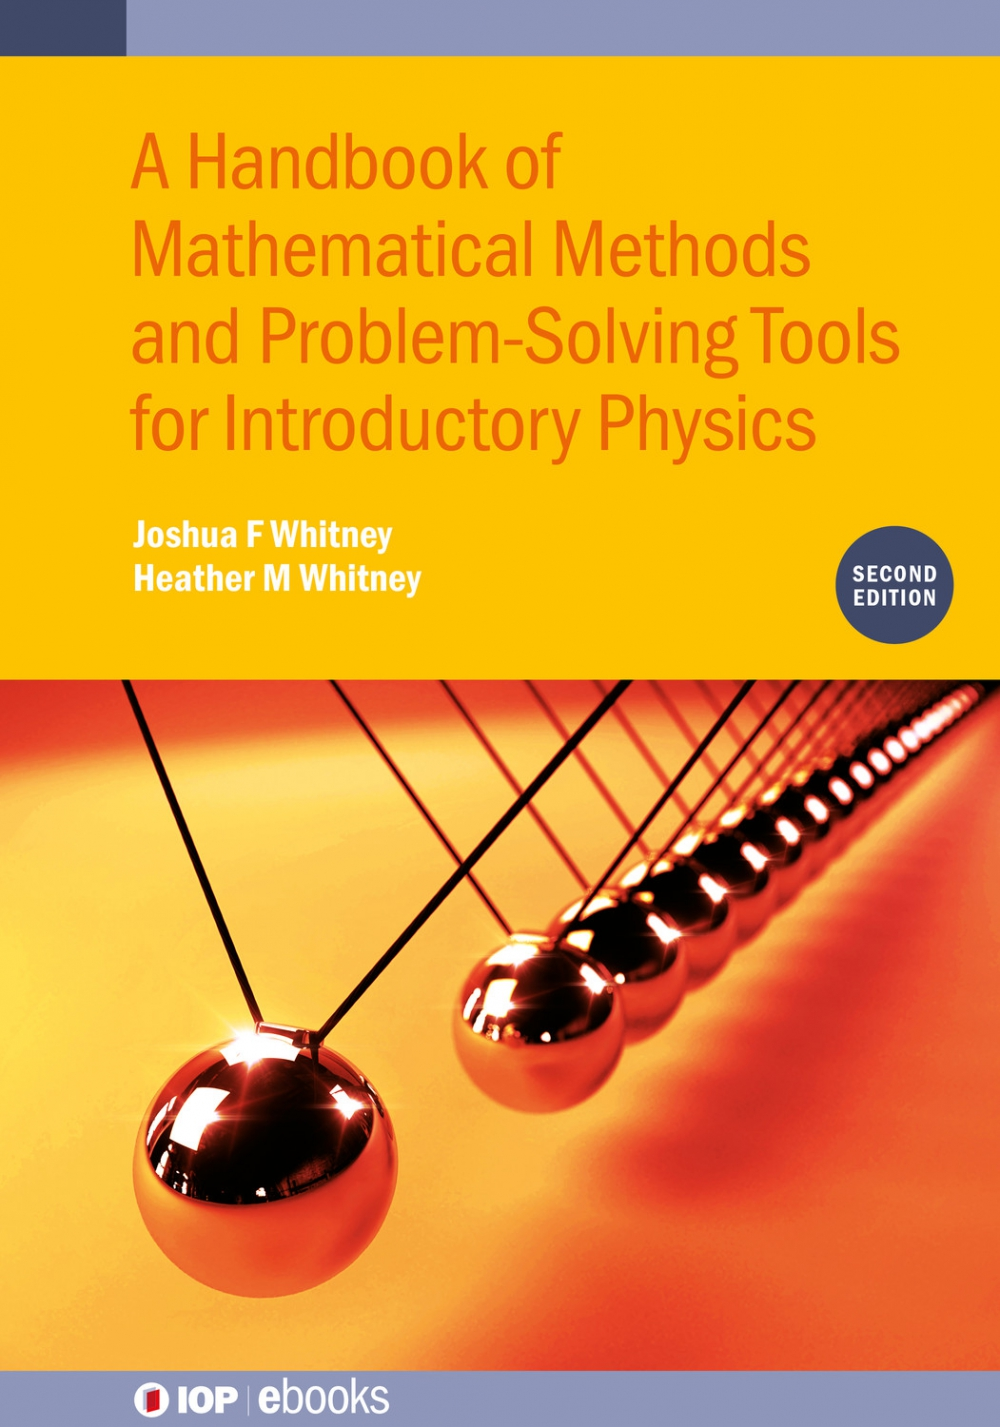 Jacket image for A Handbook of Mathematical Methods and Problem-Solving Tools for Introductory Physics (Second Edition)